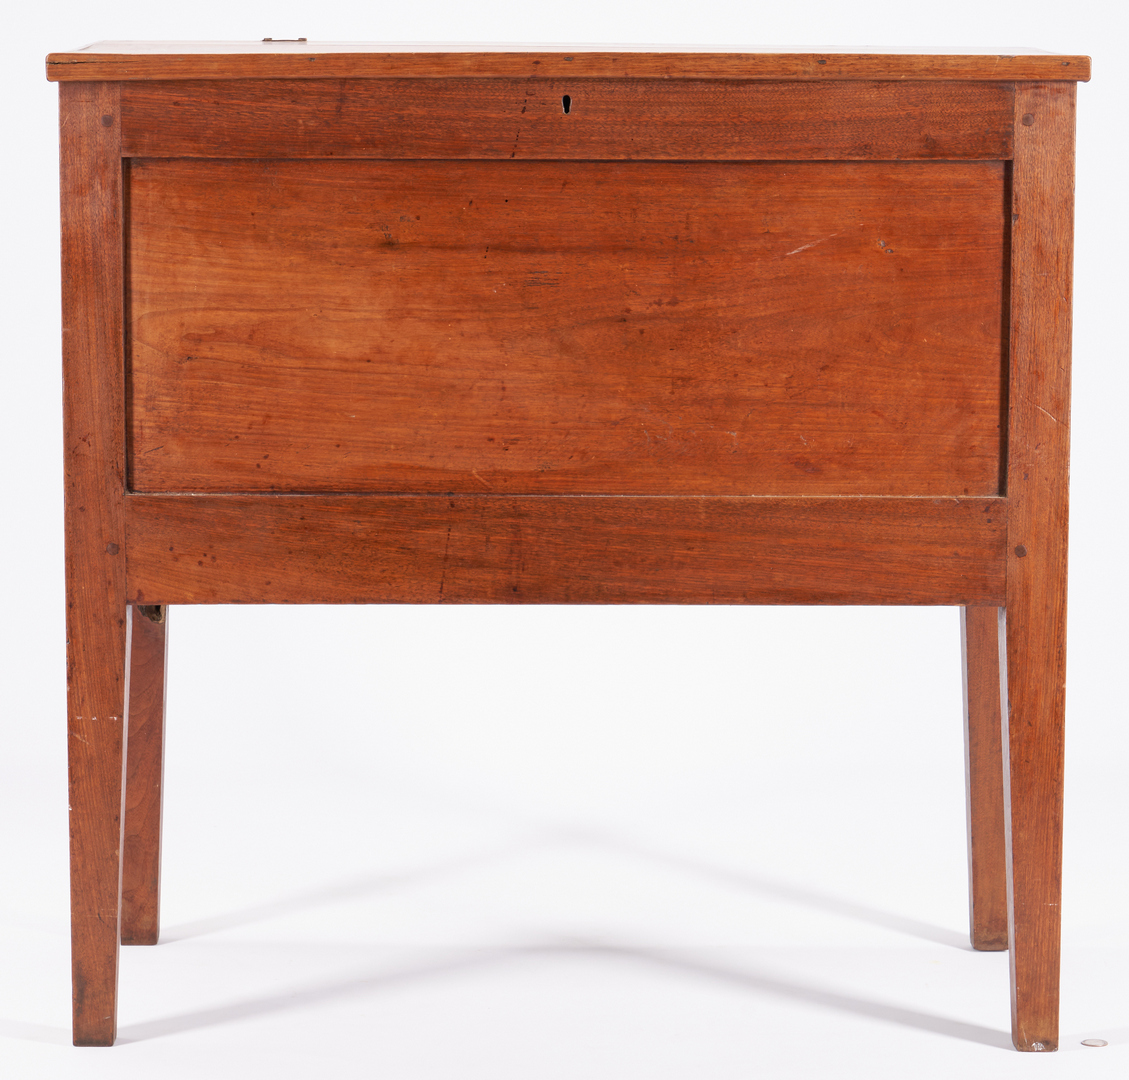 Lot 161: Southern Hepplewhite Sugar Chest